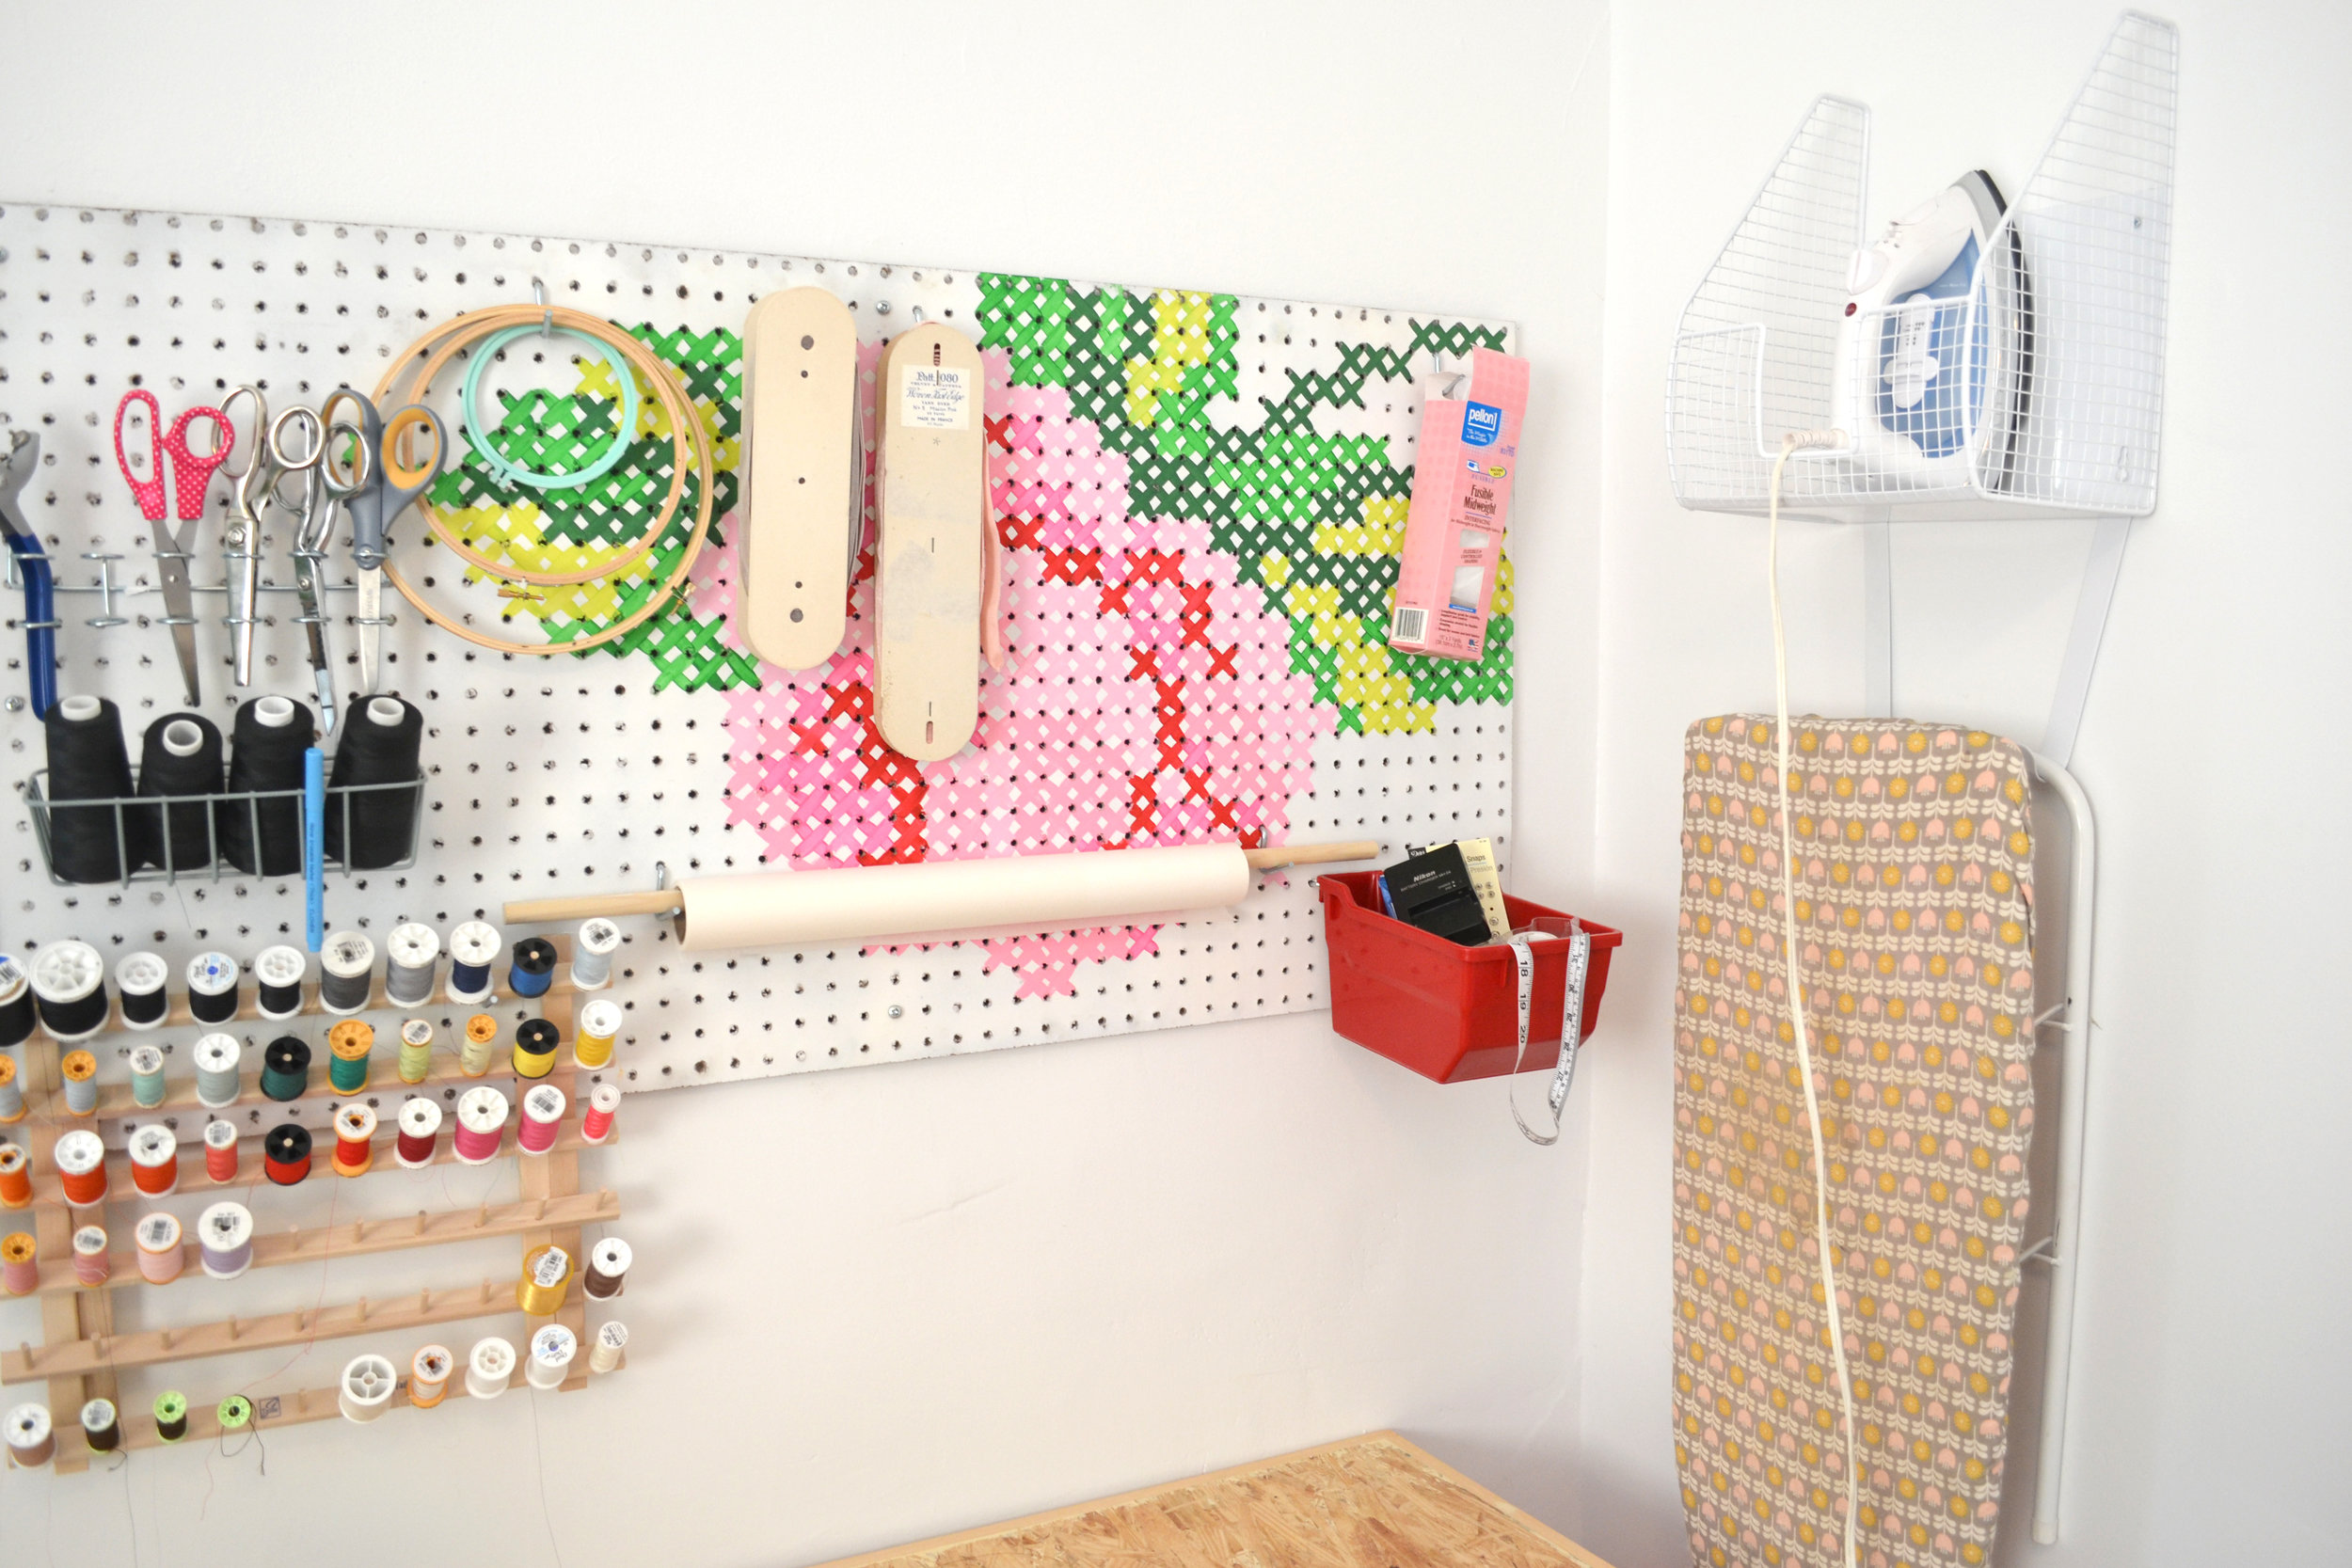 My peg board is a plain chip pegboard from Lowes that I spray painted white and used a cross stitch pattern to paint the rose. It wasn't receiving much utility in my old space, but I added a lot of features when I moved my space and now it's one of the things I am most thankful for. I also love having my little ironing board up and out of the way along with my iron.